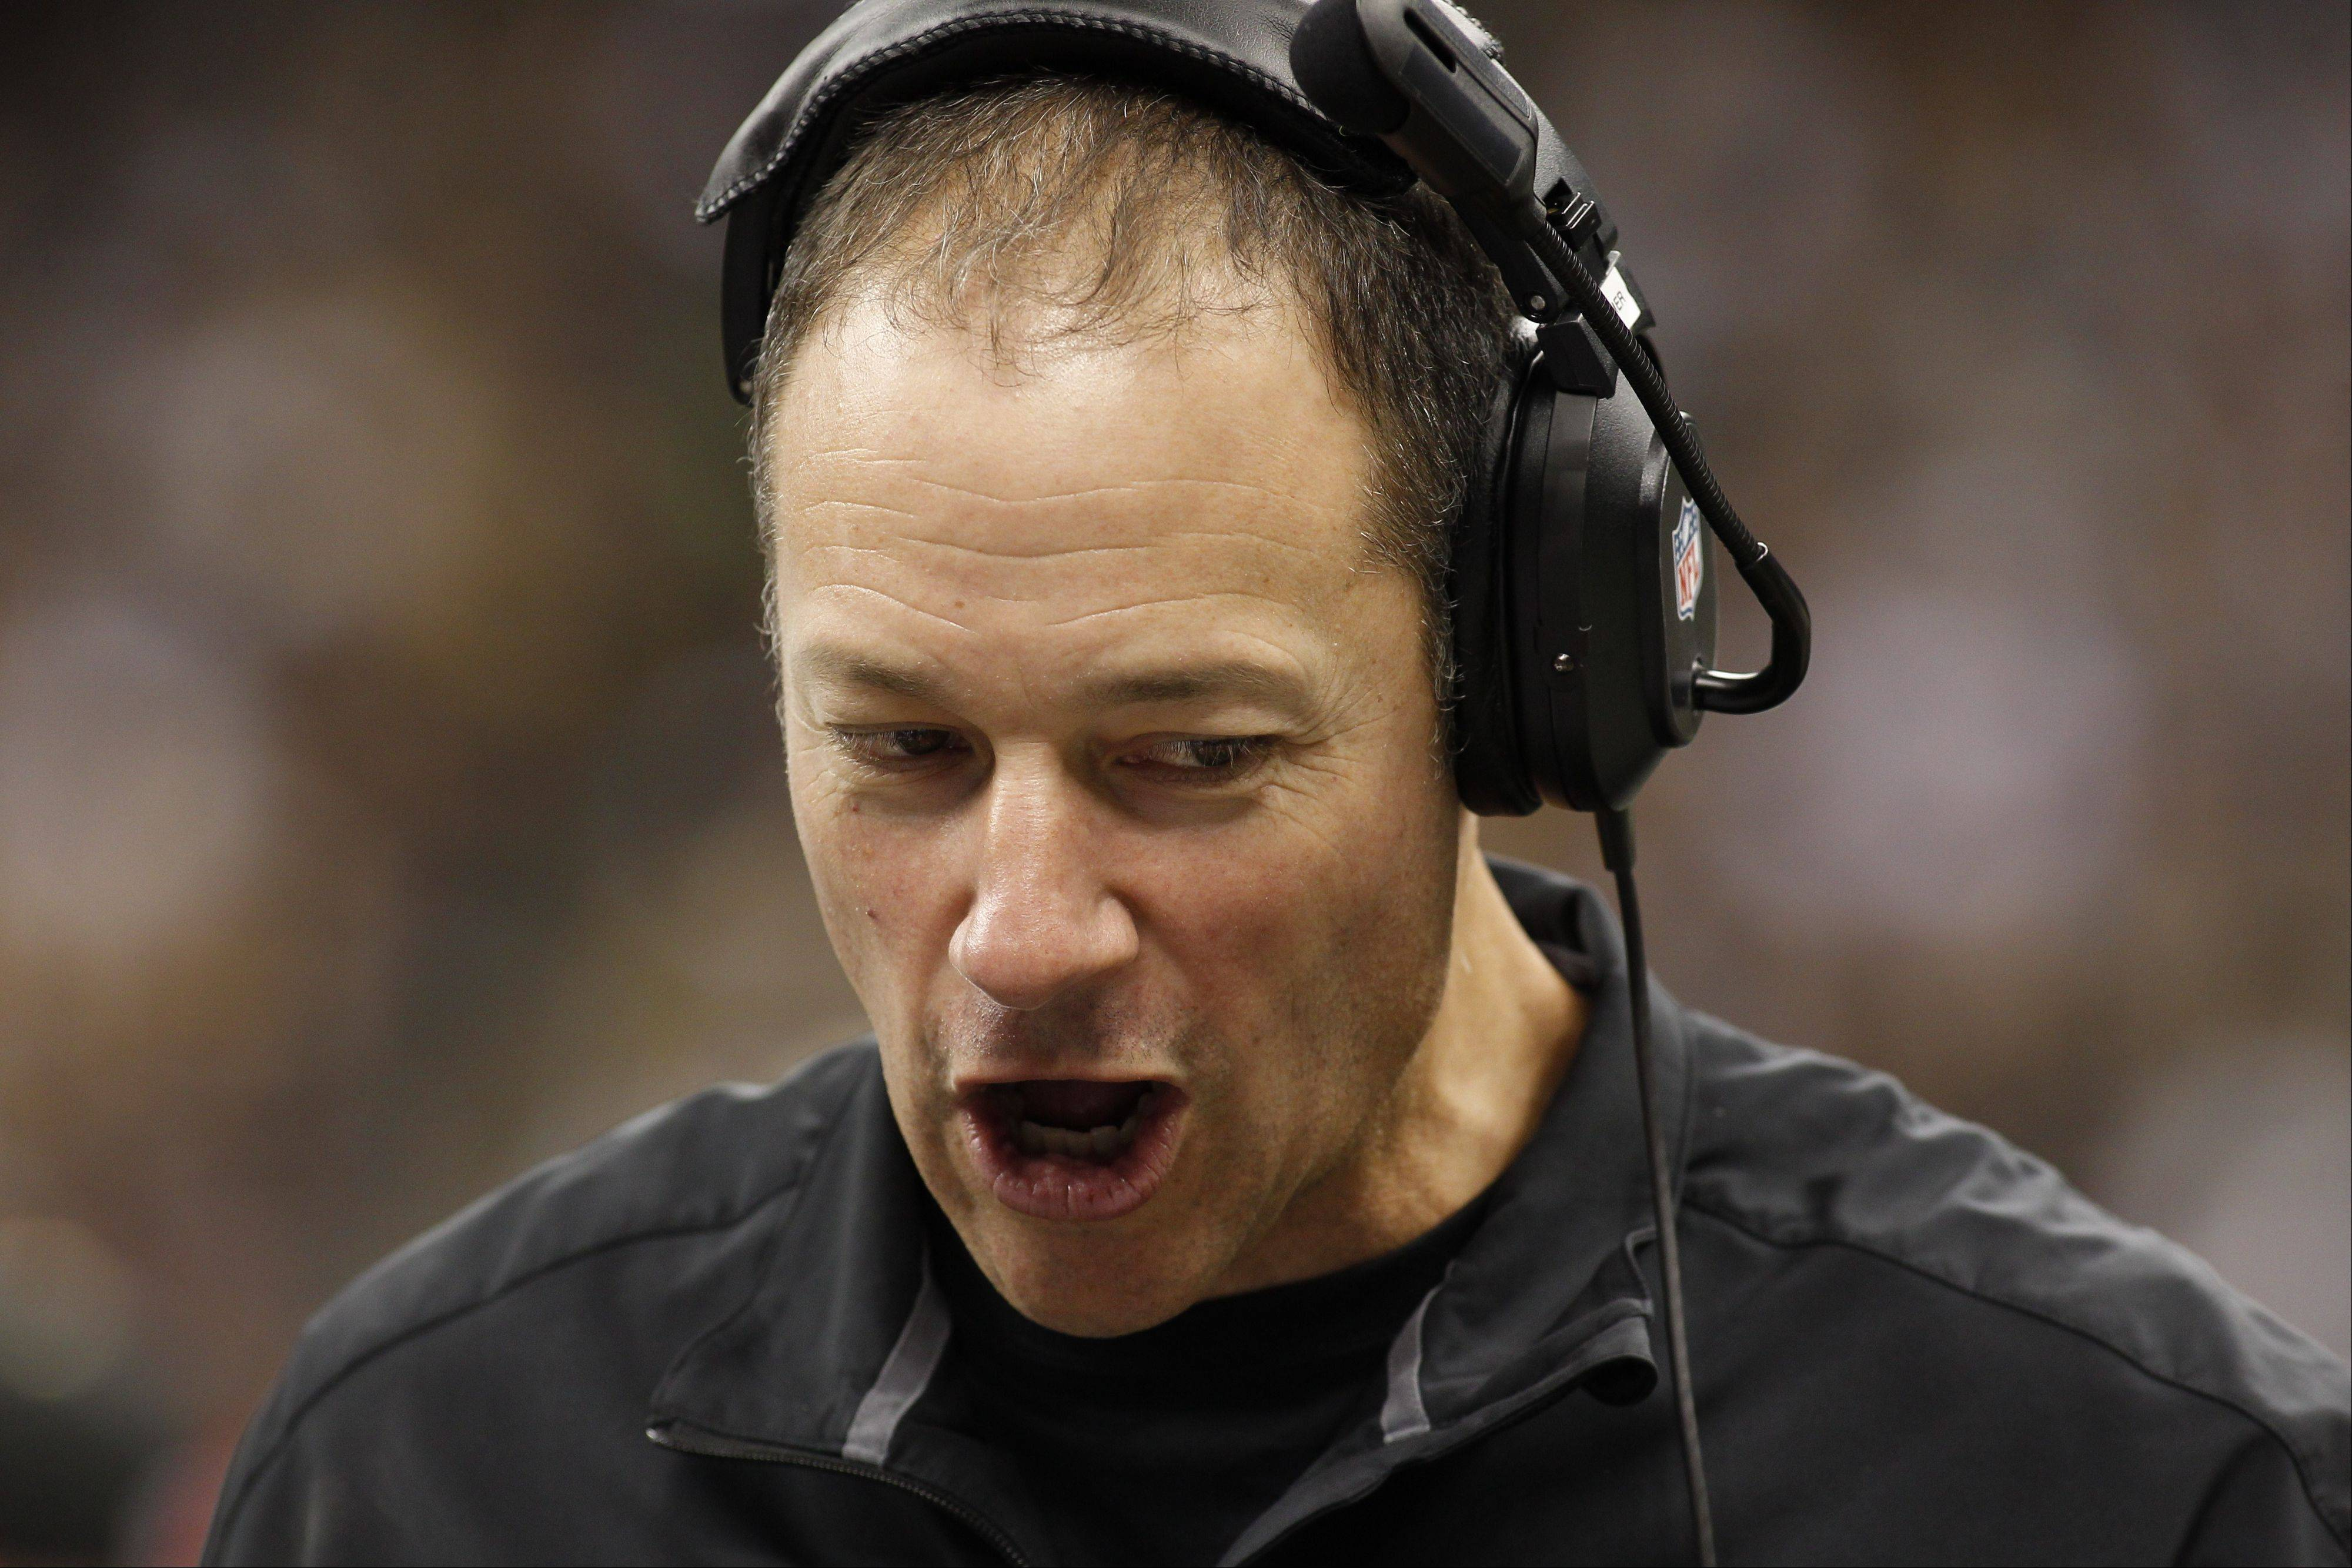 Although new Bears head coach Marc Trestman will likely call the plays from the sideline, the Bears have hired former New Orleans Saints interim head coach Aaron Kromer as the team's offensive coordinator and offensive line coach.